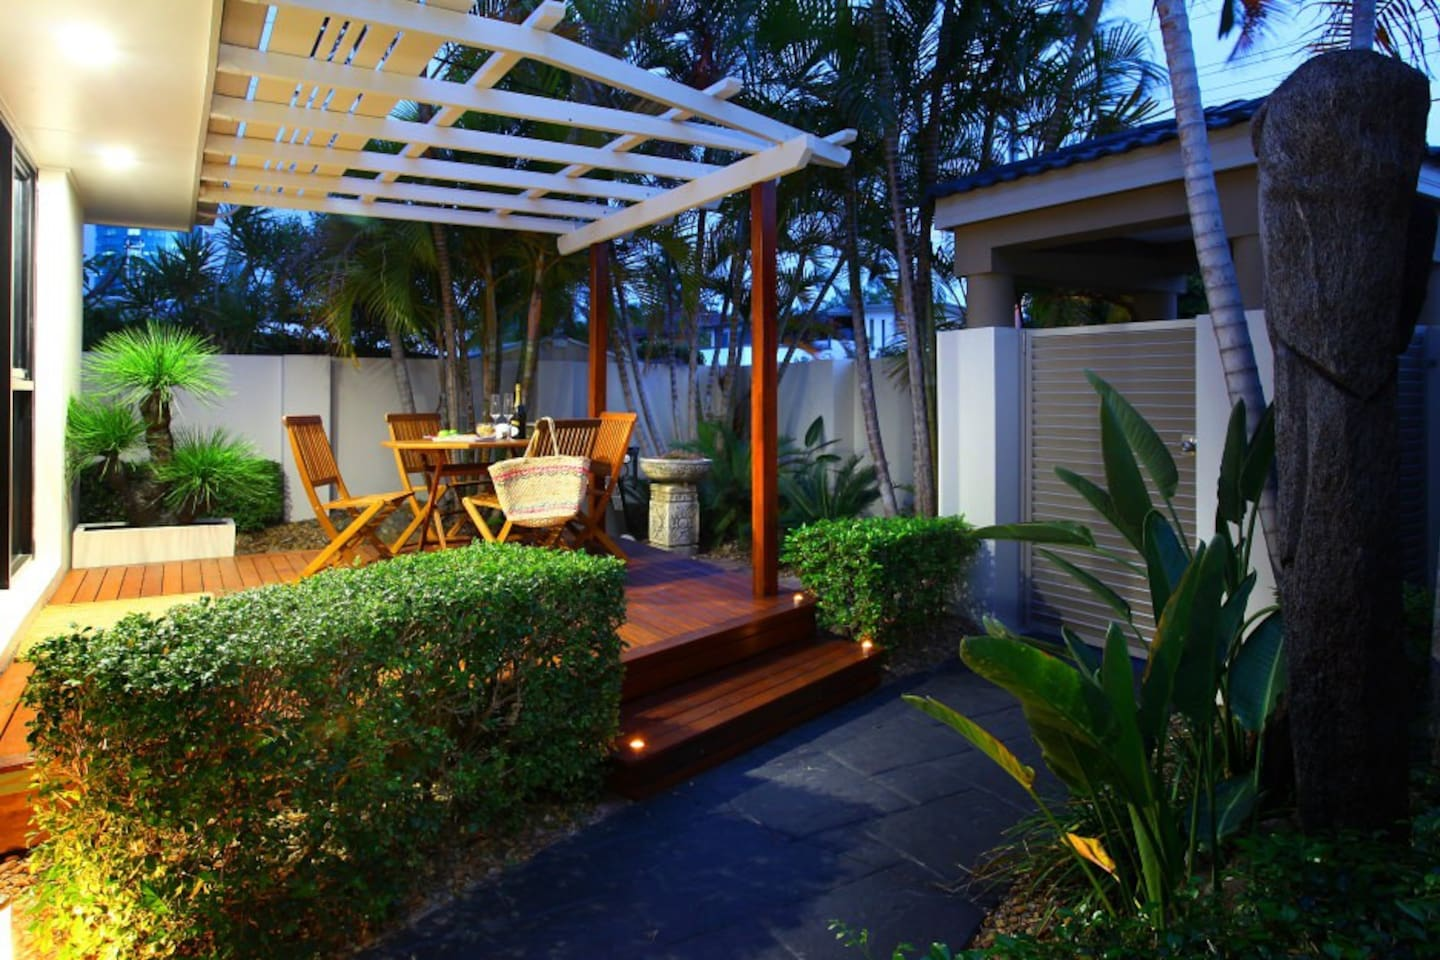 Dine on your own private deck with security keypad entry